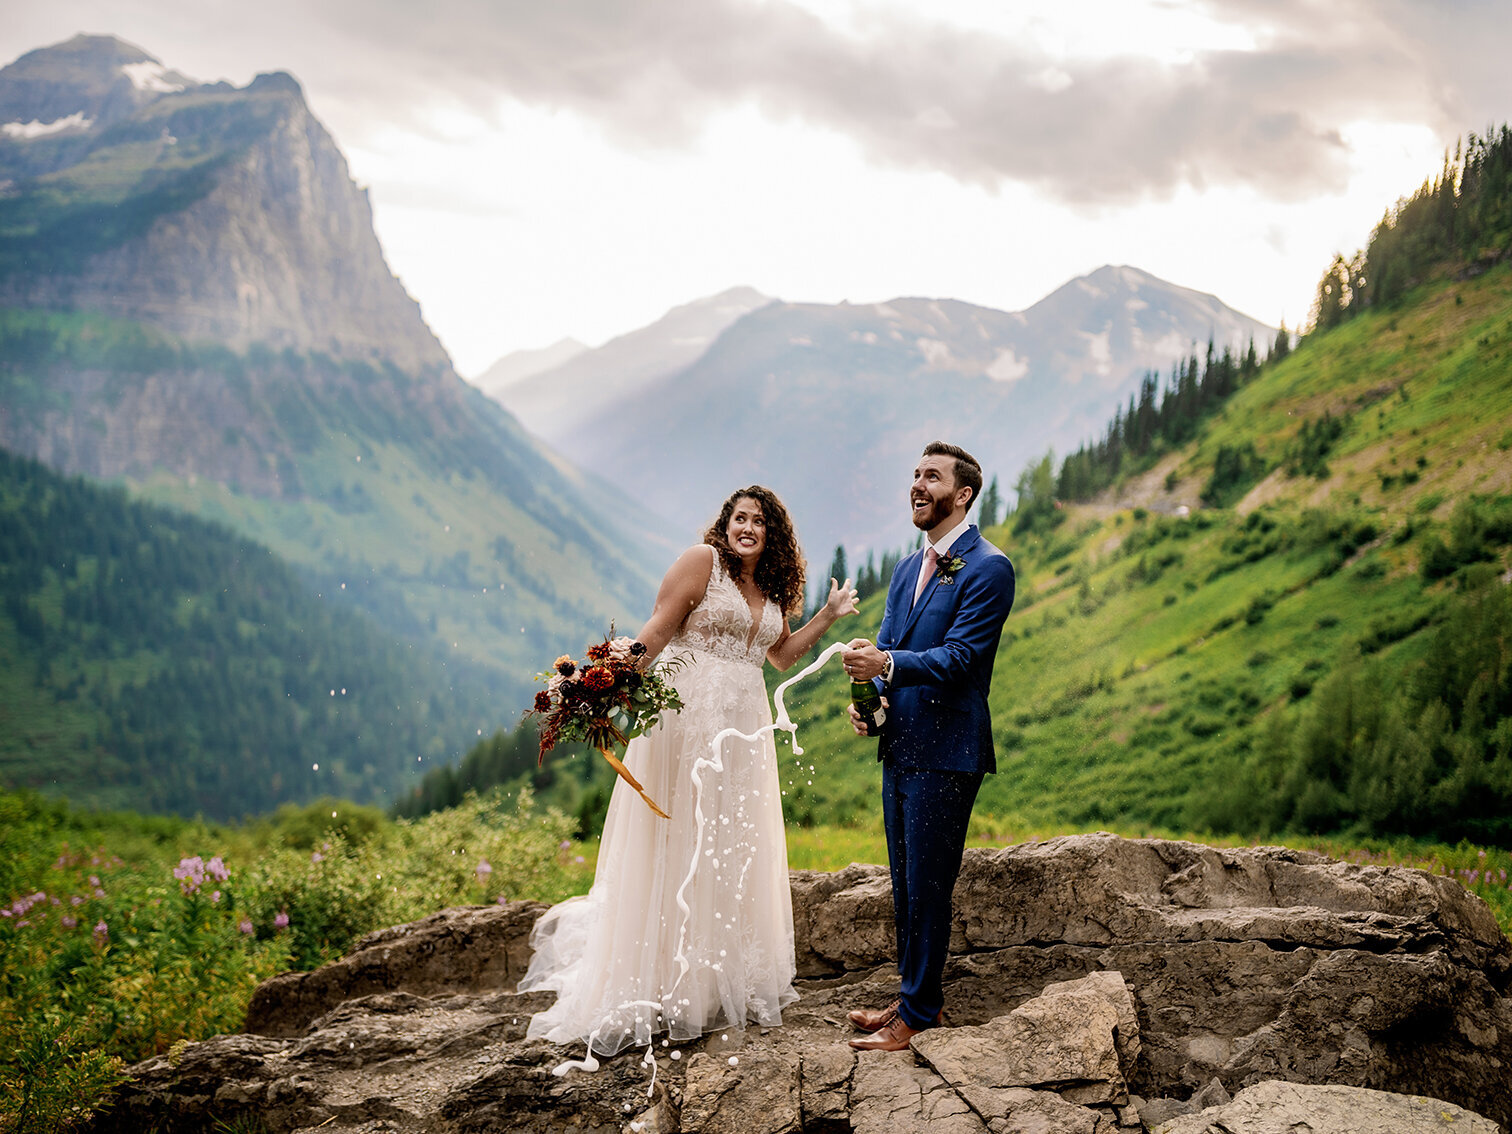 Montana-Wedding_Jessica-Manns-Photography_155